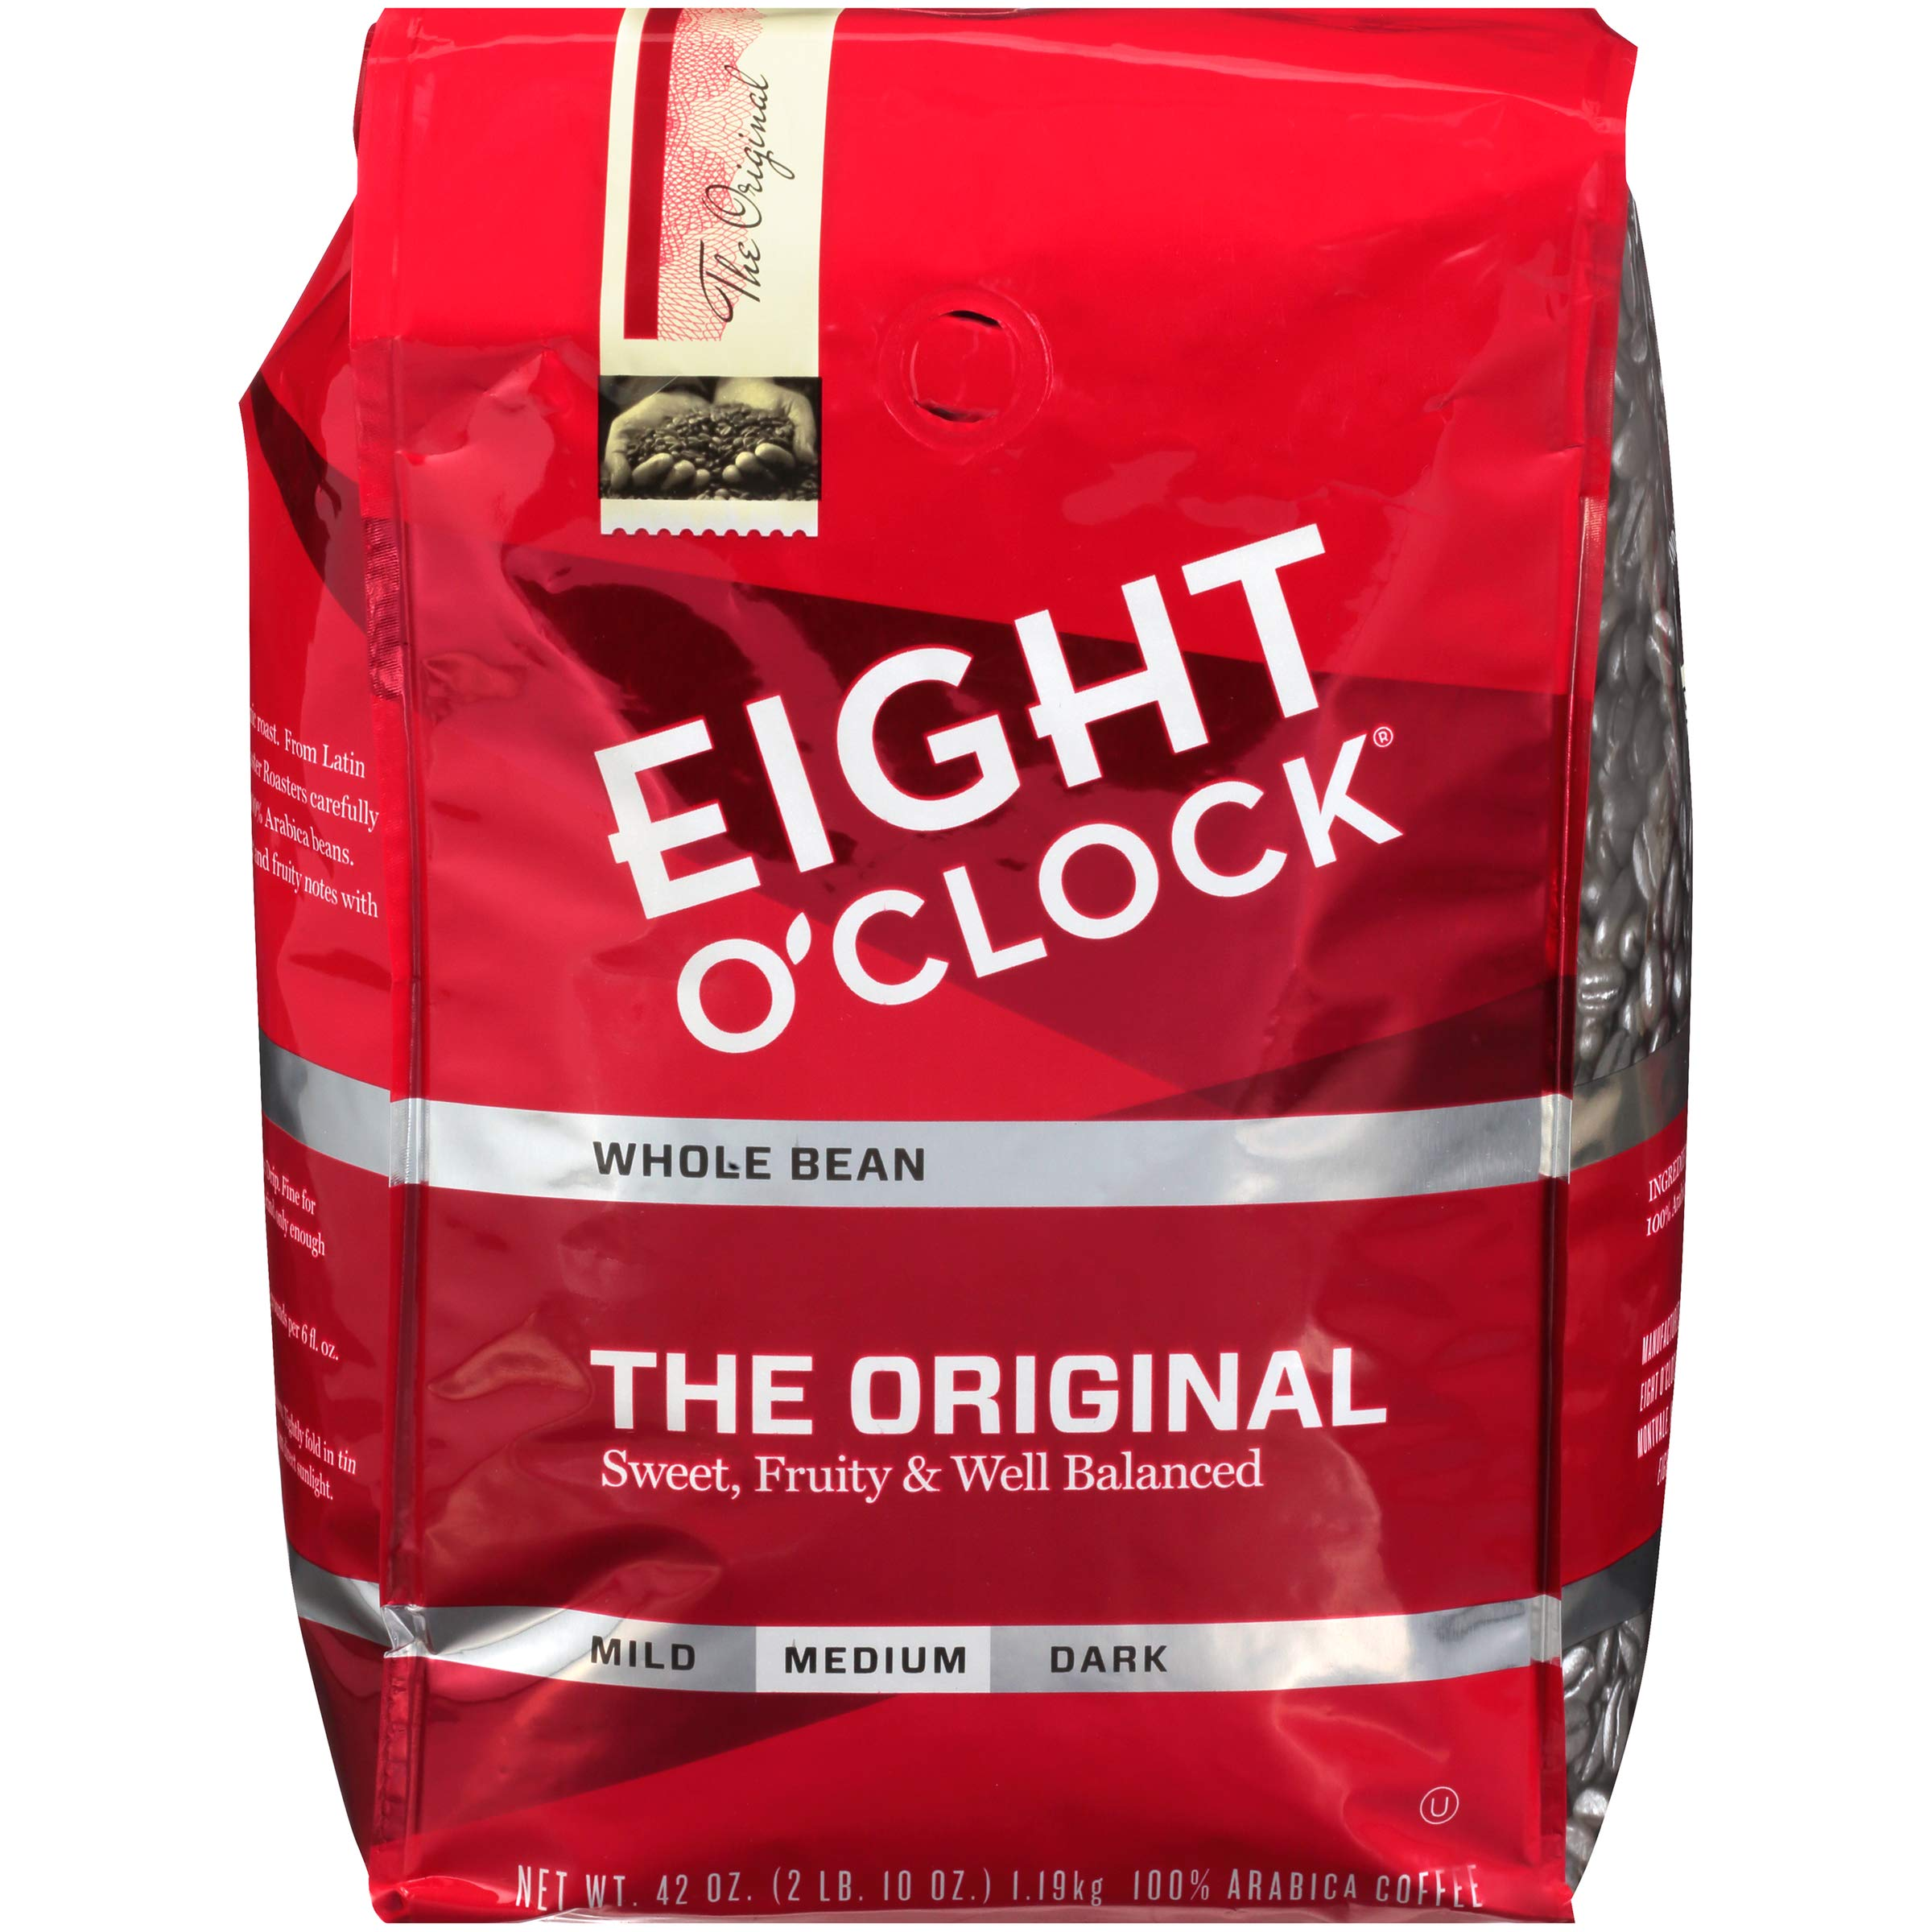 Eight OClock Whole Bean Coffee, The Original, 42 Ounce